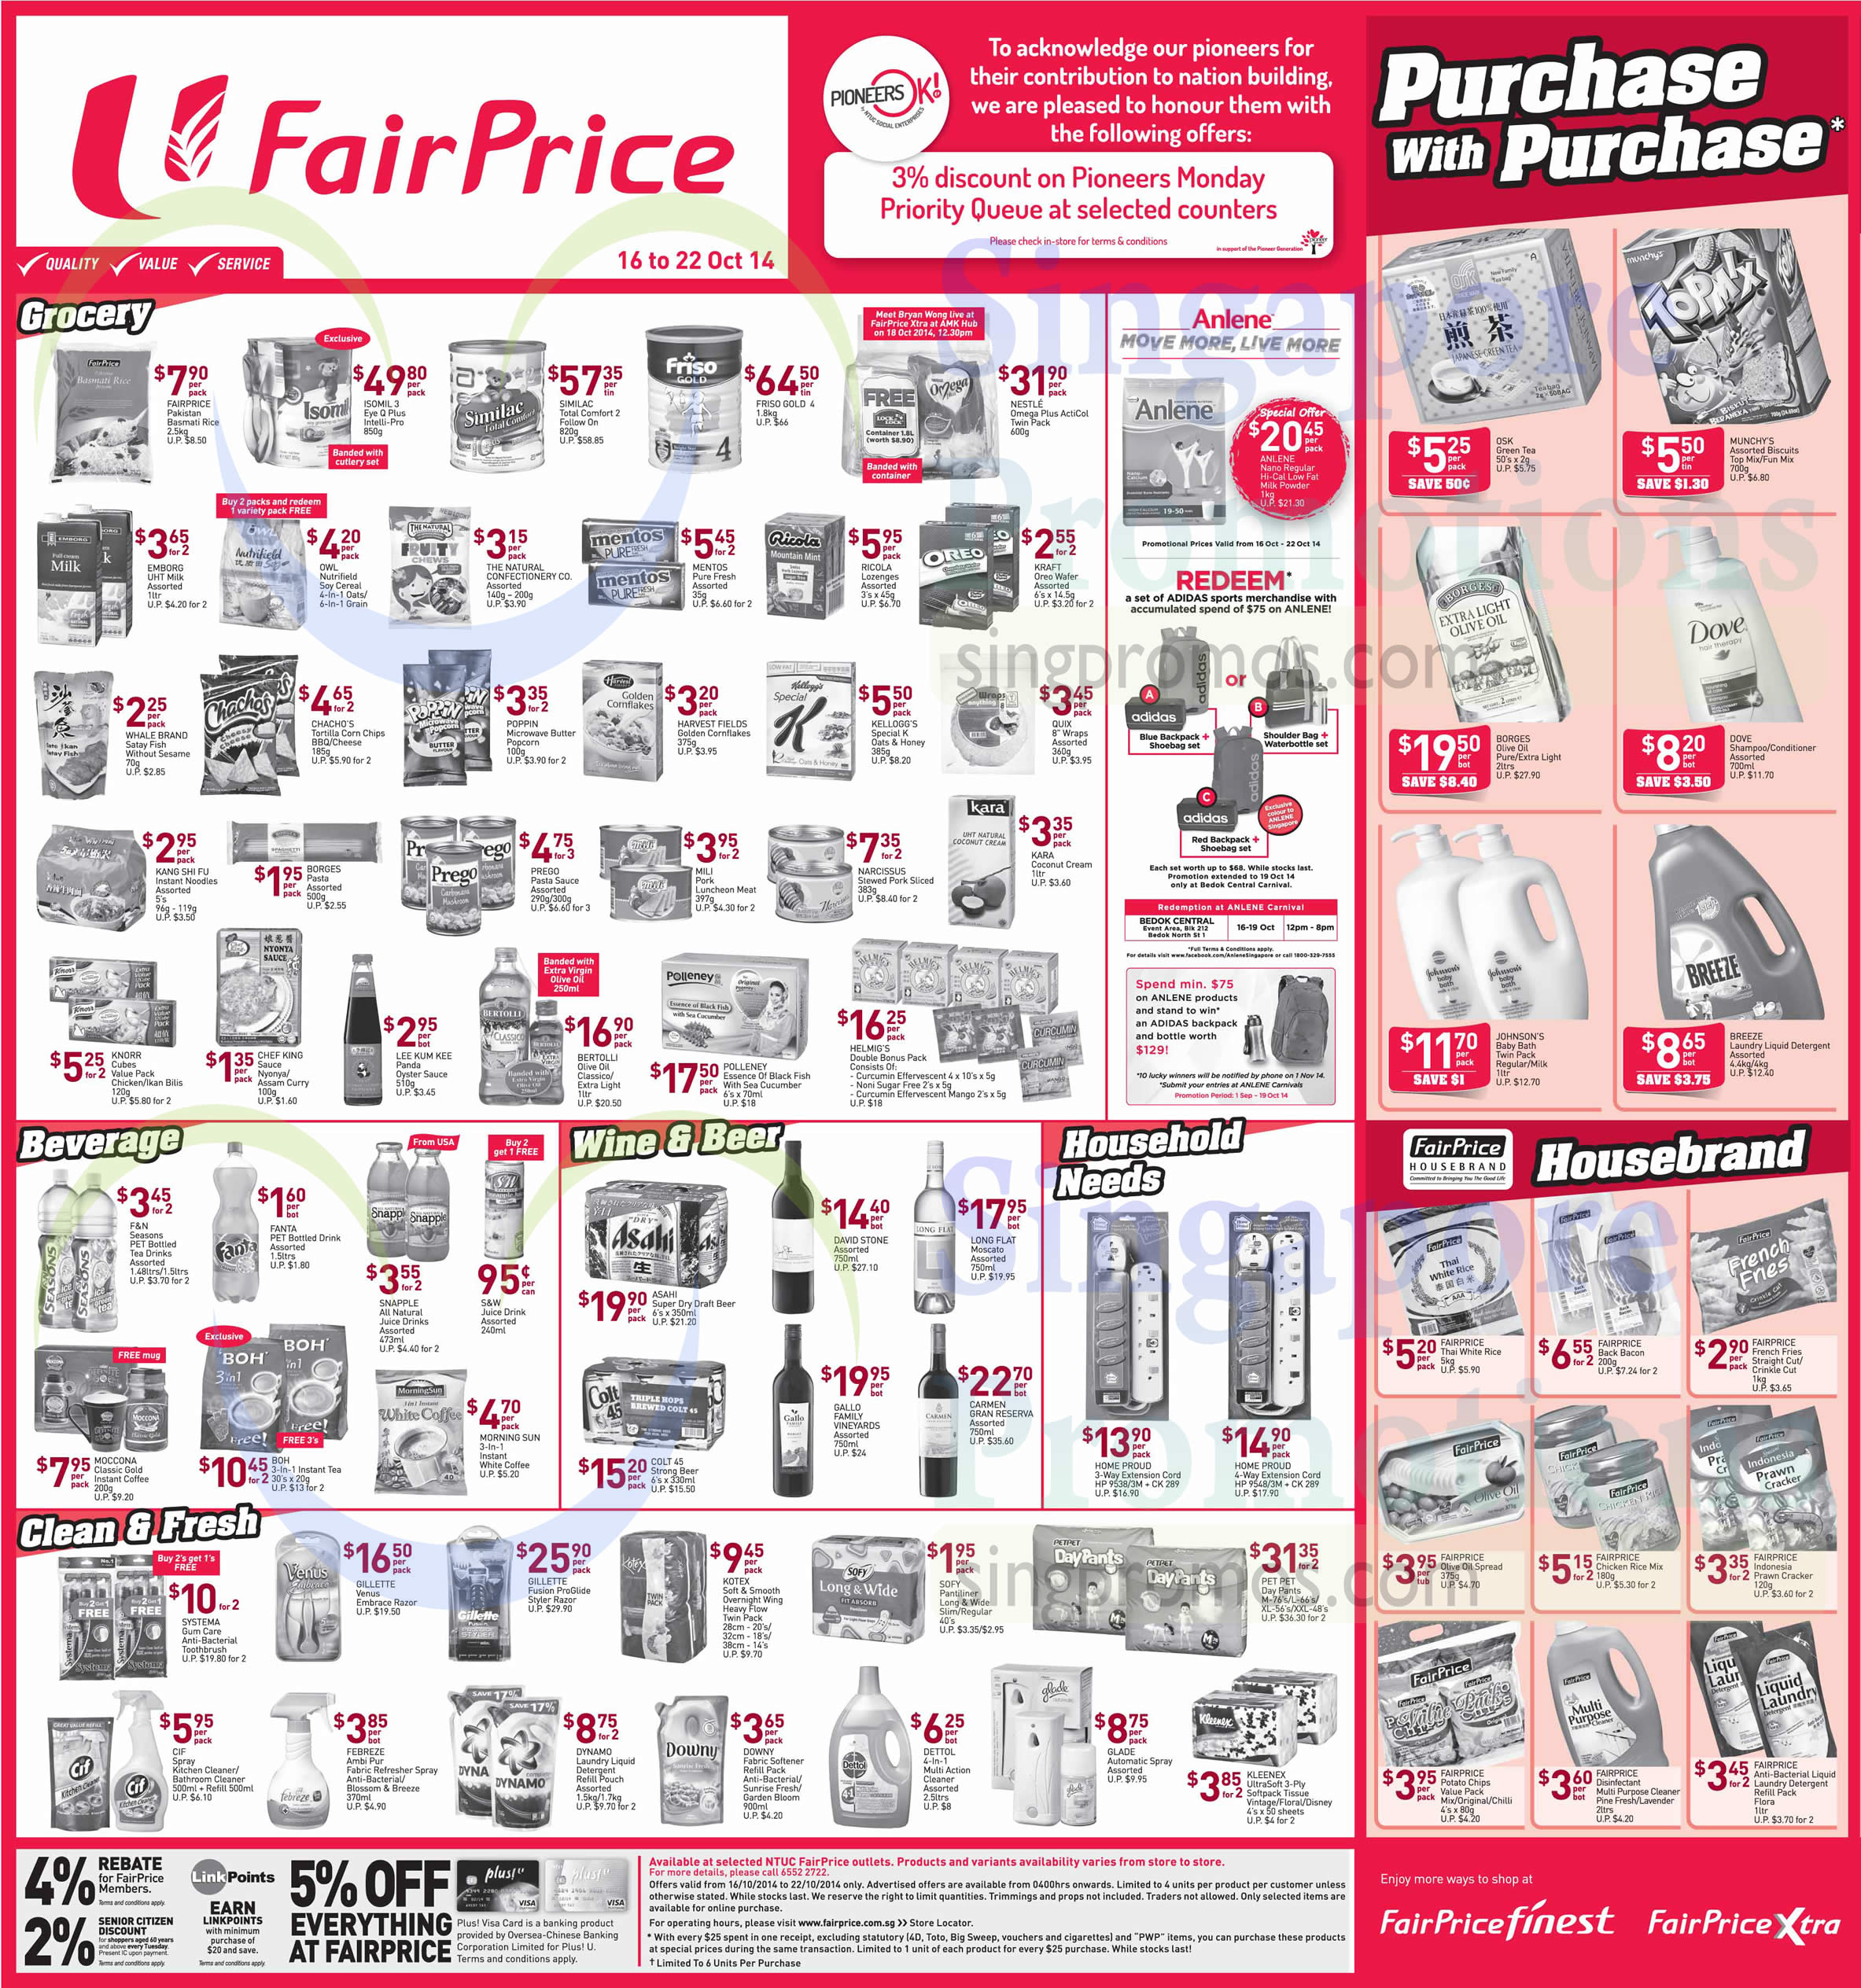 (Until 22 Oct) Grocery, Beverage, Wines, Household Needs, Purchas With Purchase, Housebrand Products